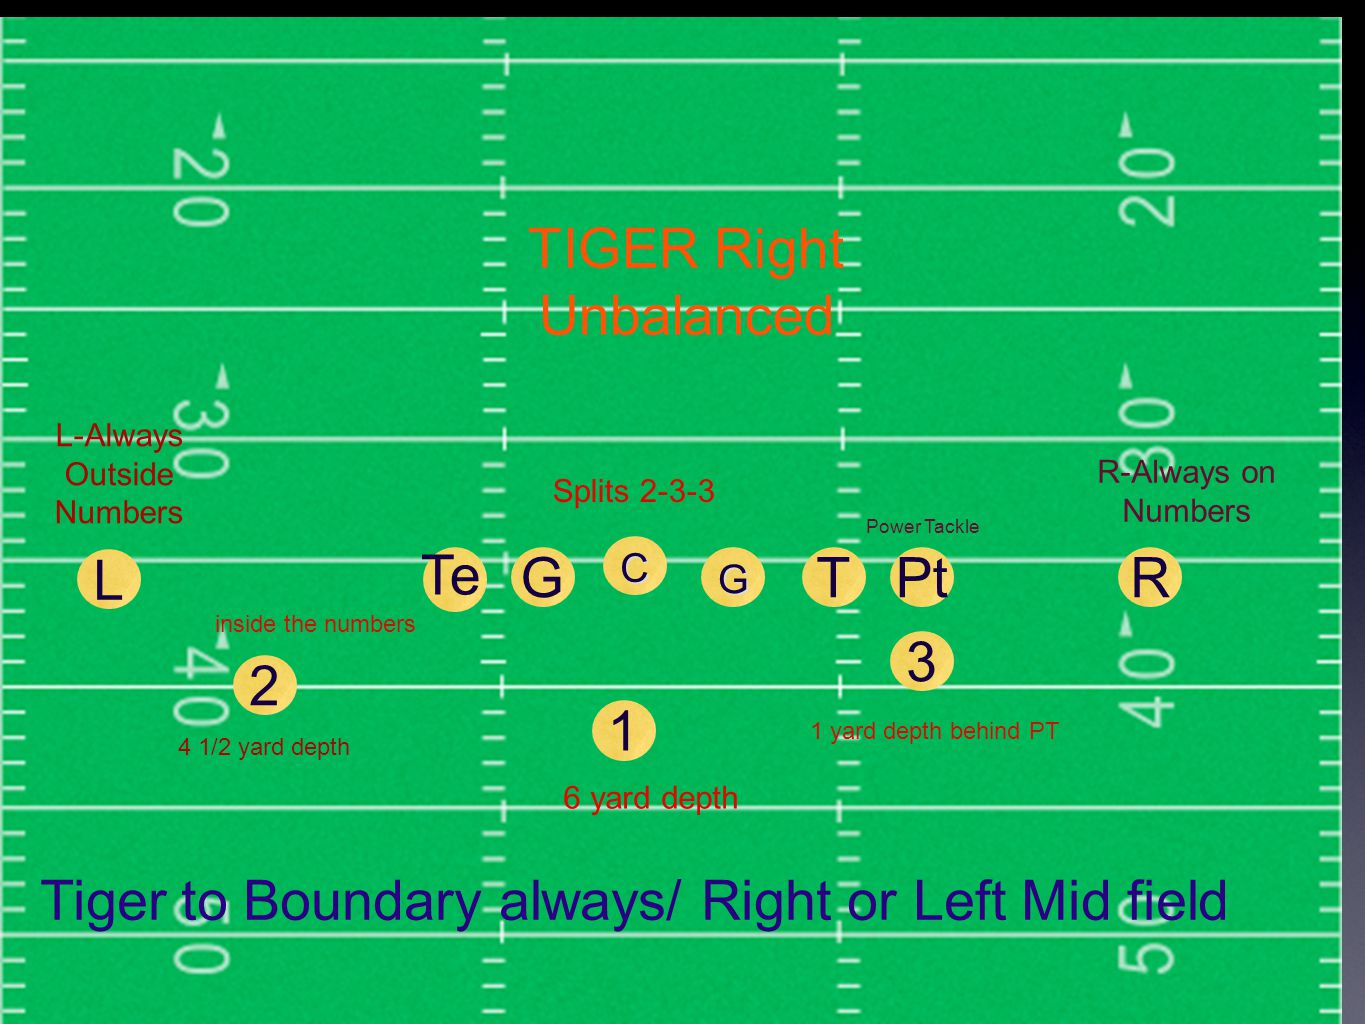 Tiger to Boundary always/ Right or Left Mid field